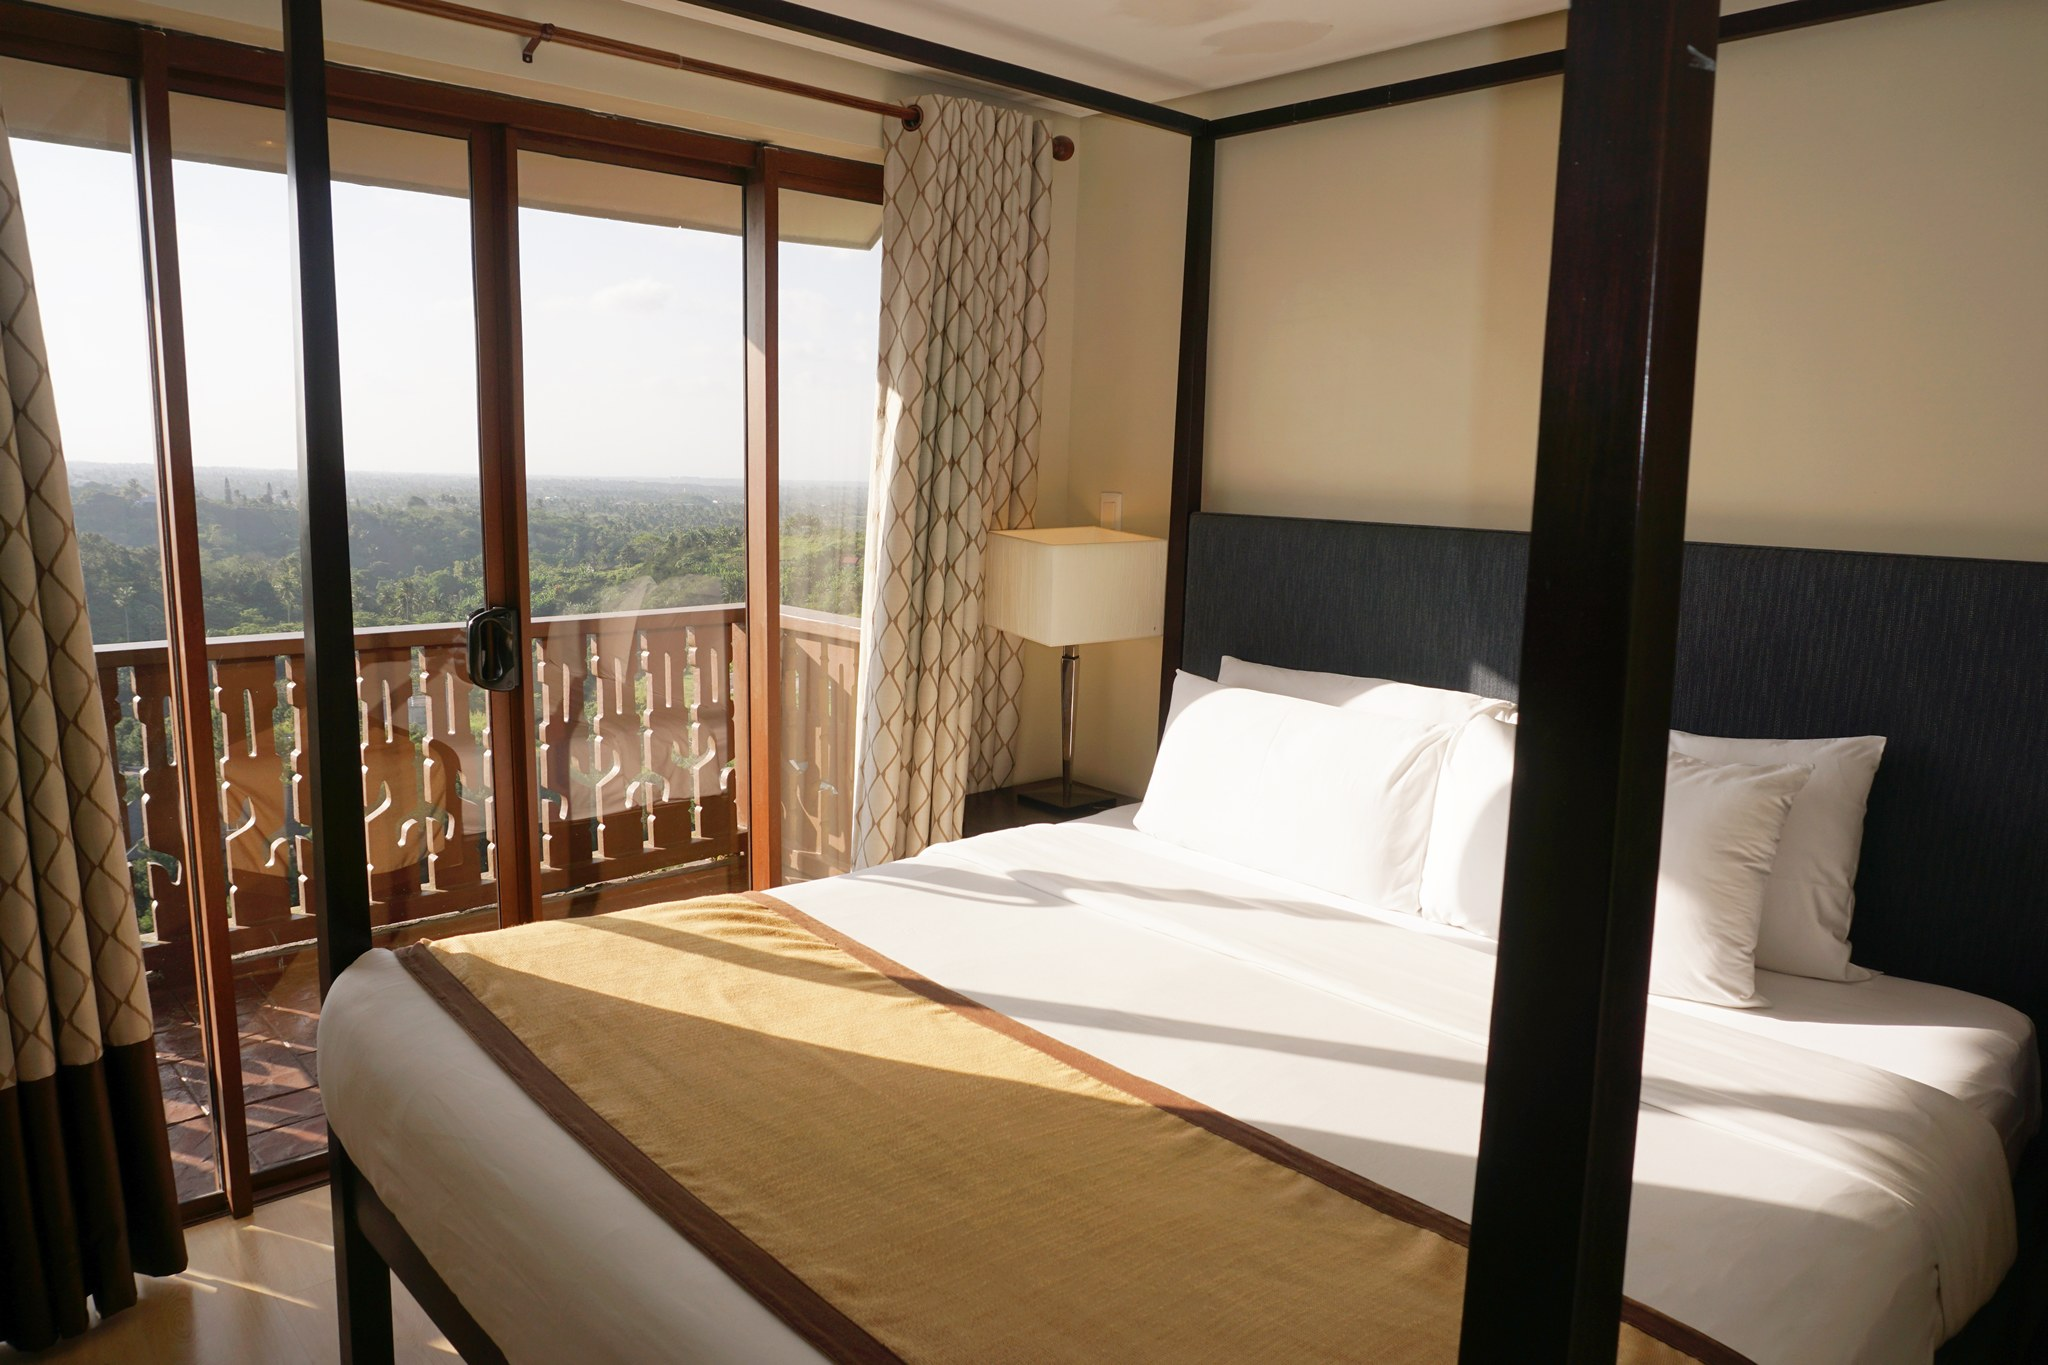 Marvelous The second bedroom like the master us bedroom also features a queen size bed Although it does not have a balcony it has a window where you can still